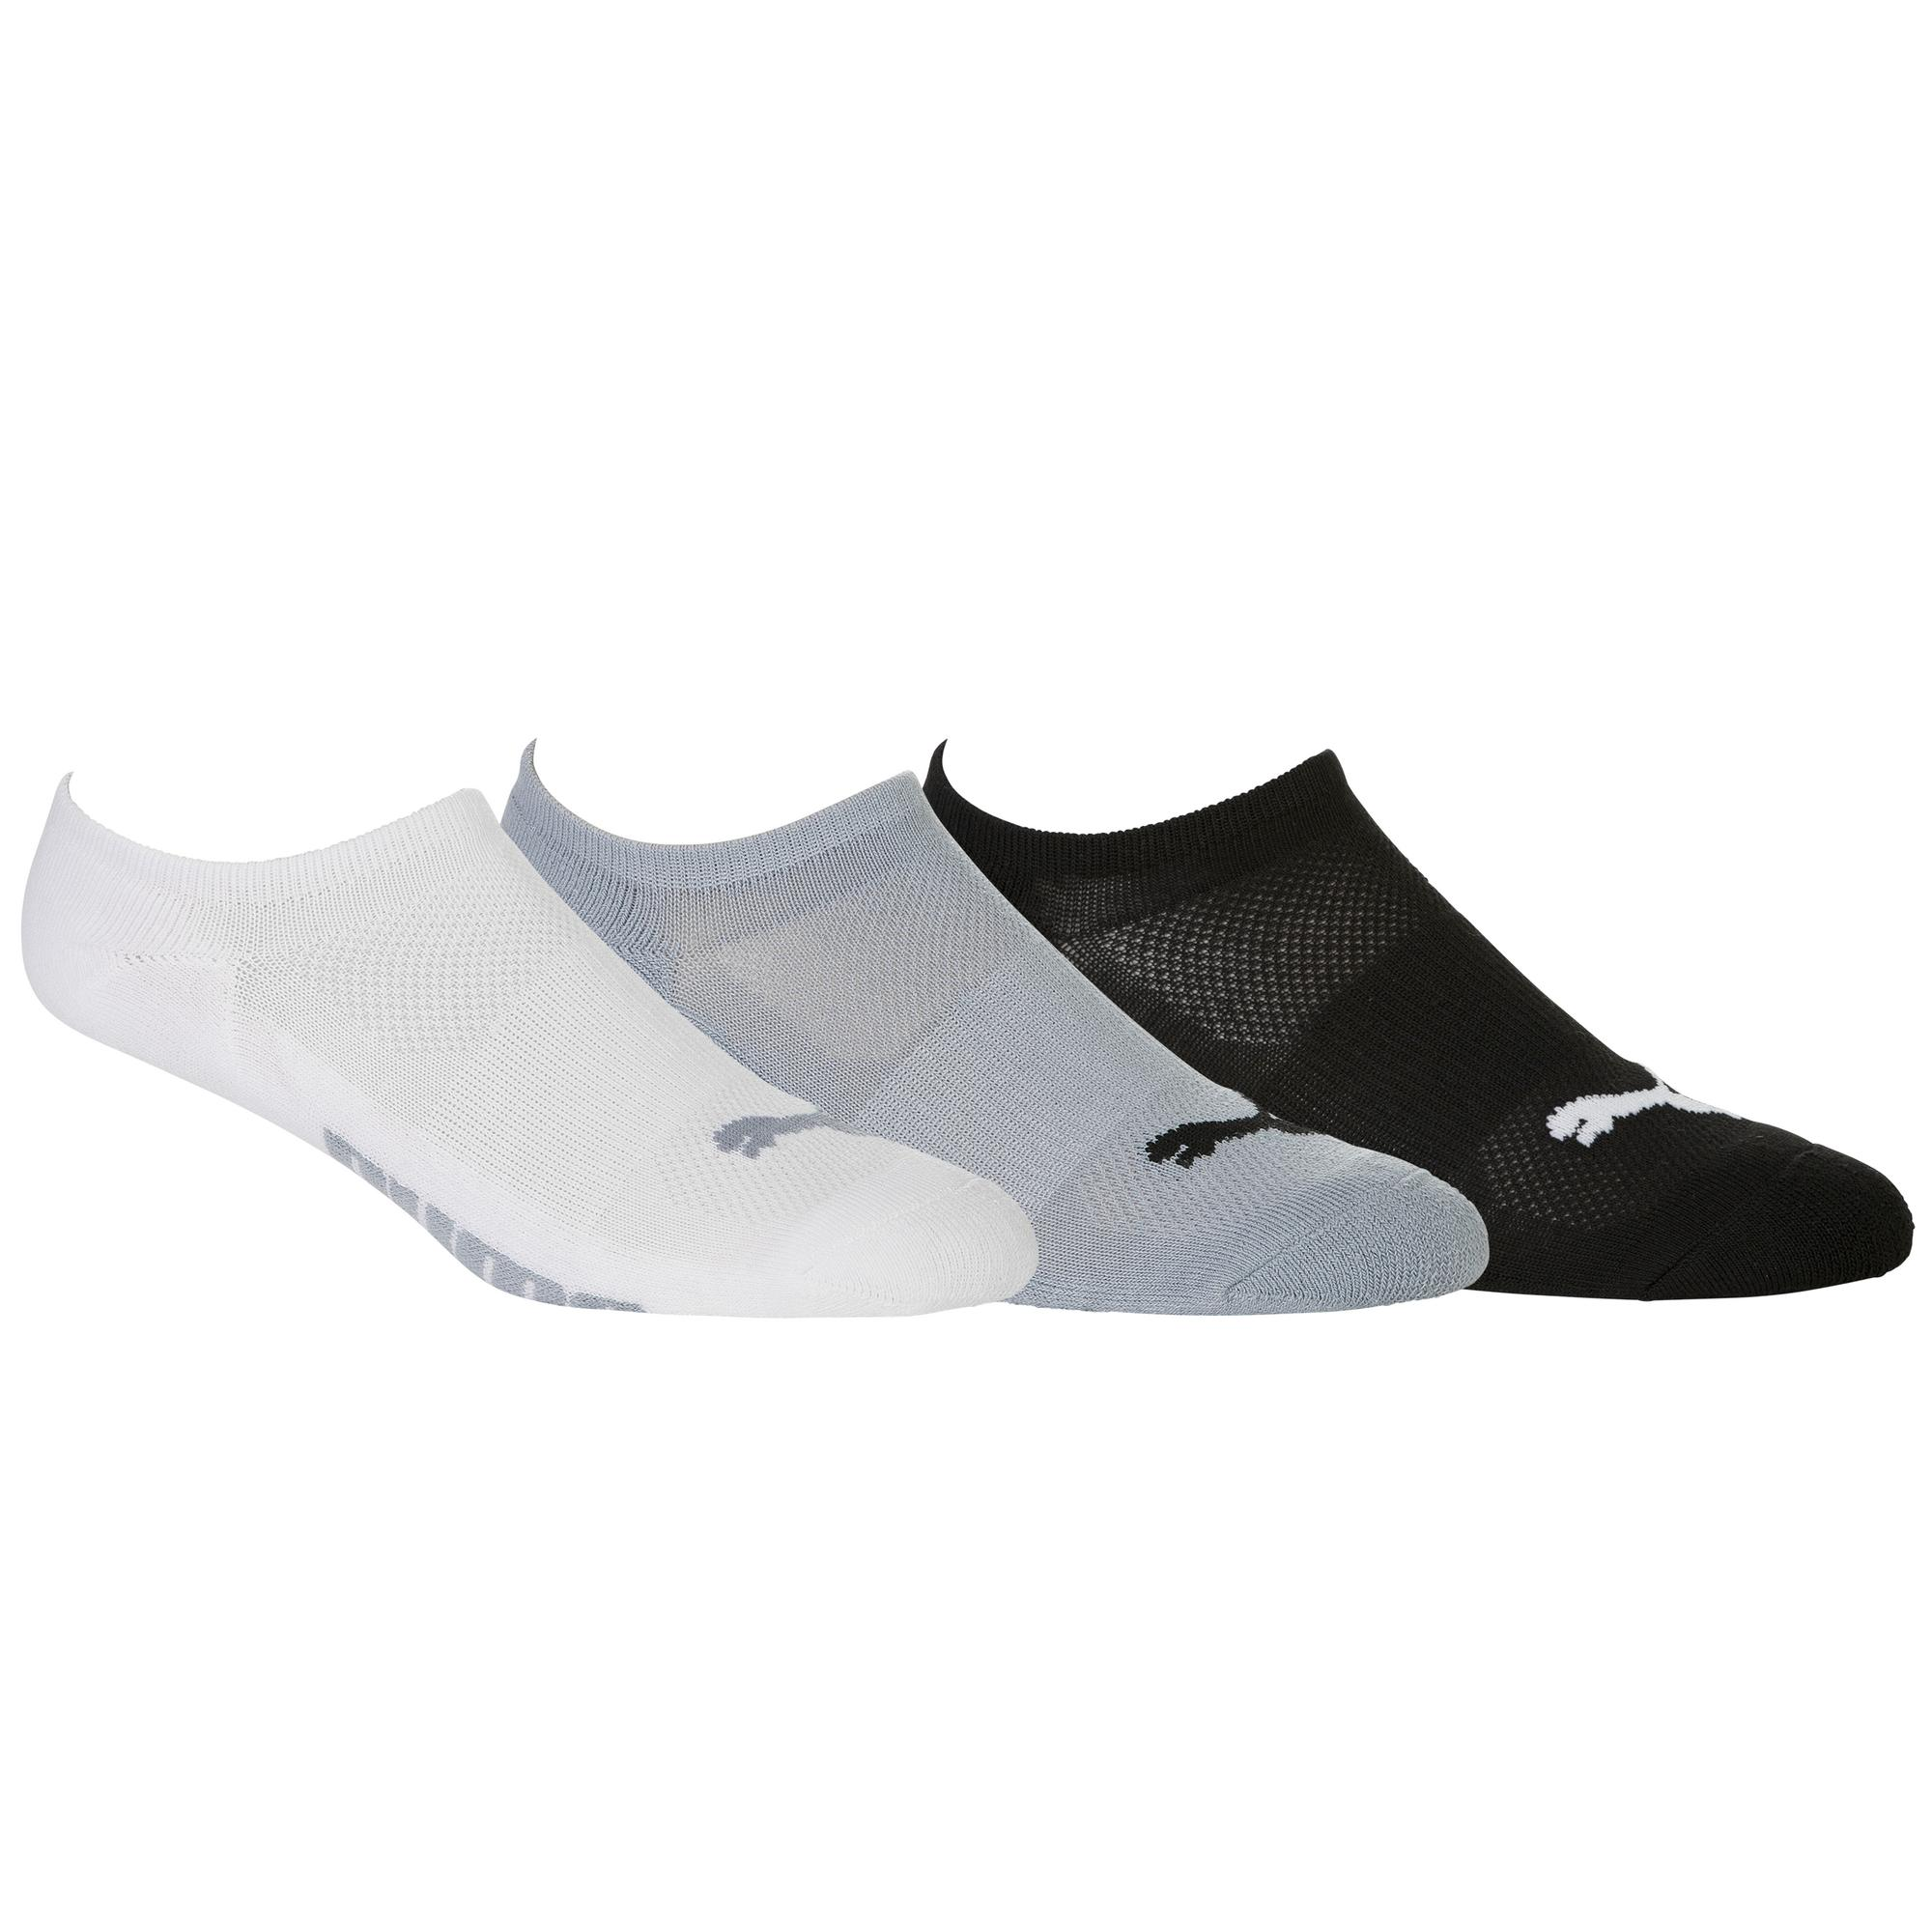 Women's 3 Pack Invisible No Show Socks